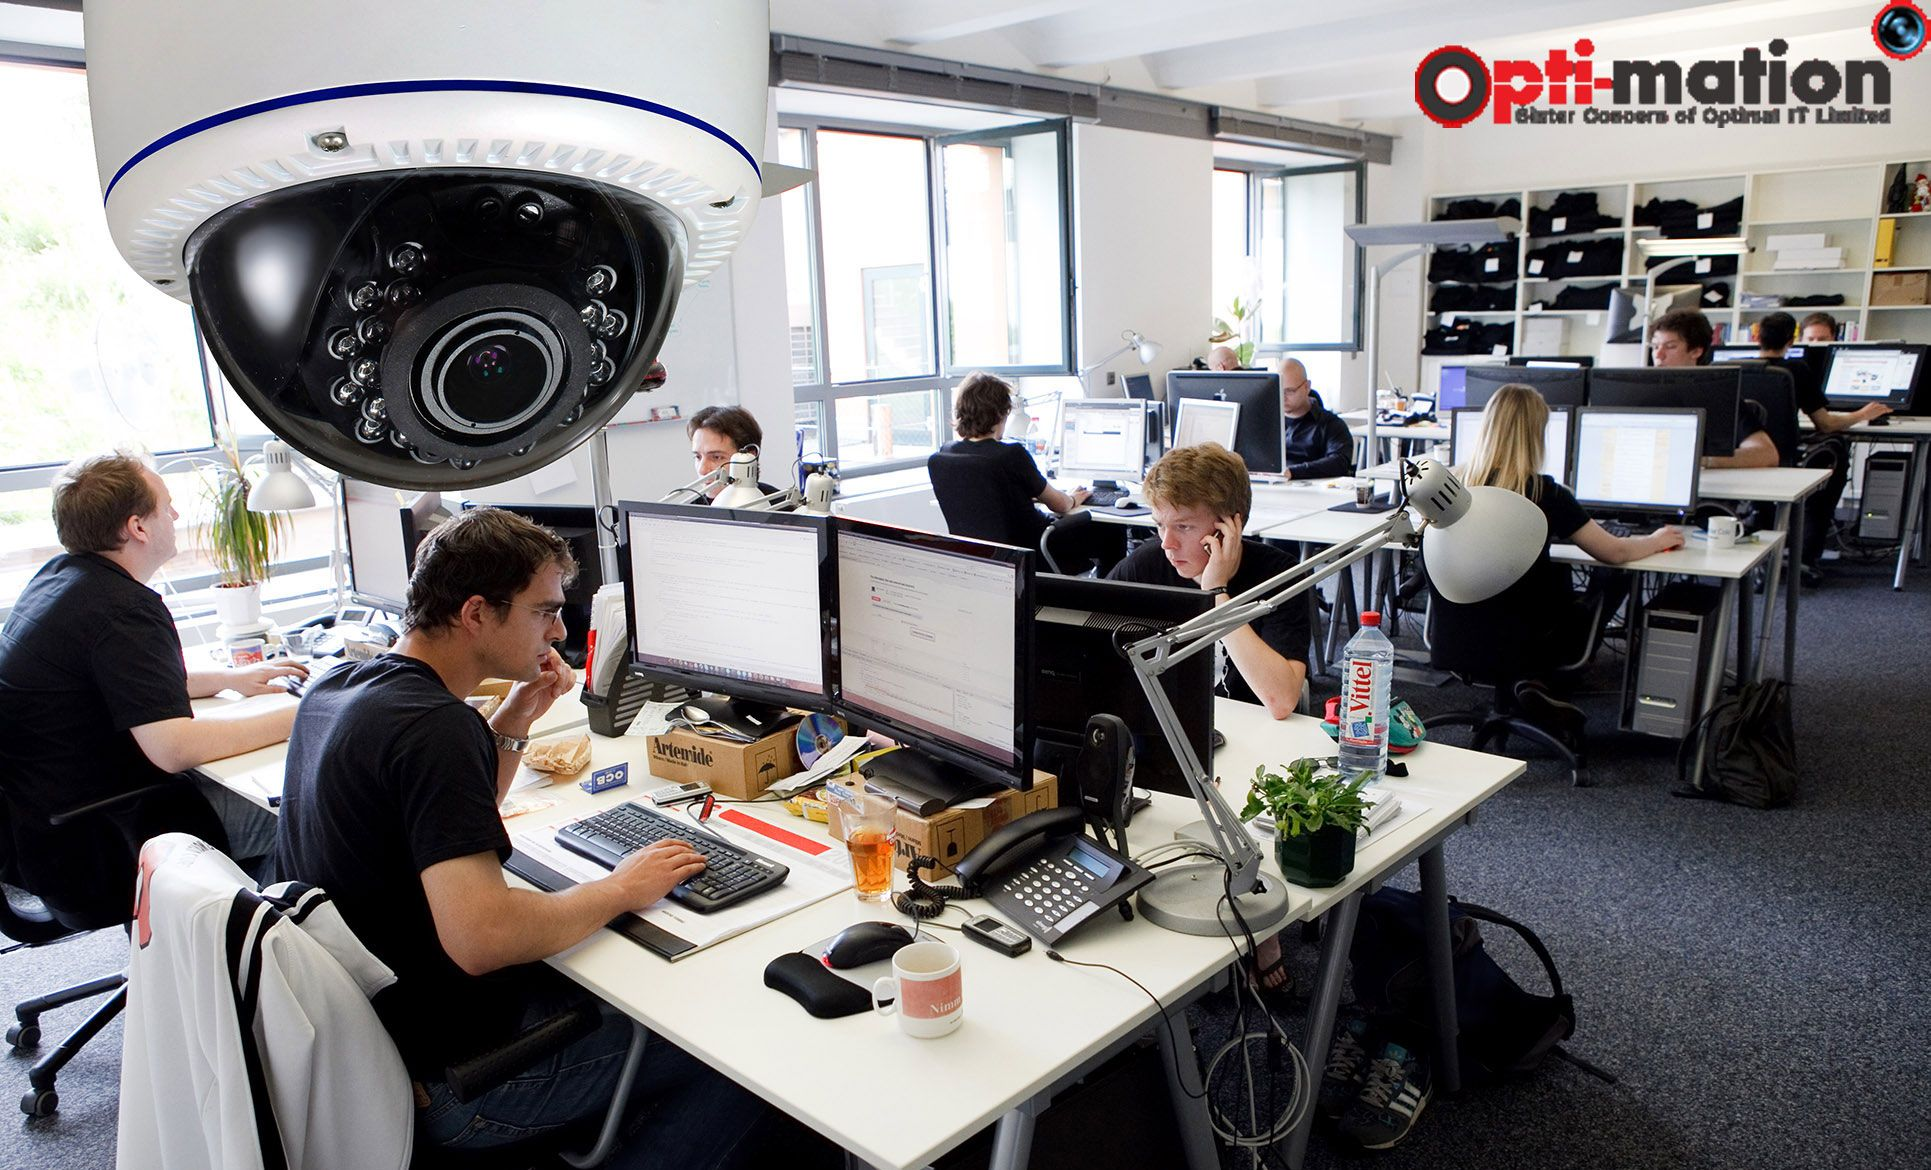 CCTV in the office 29